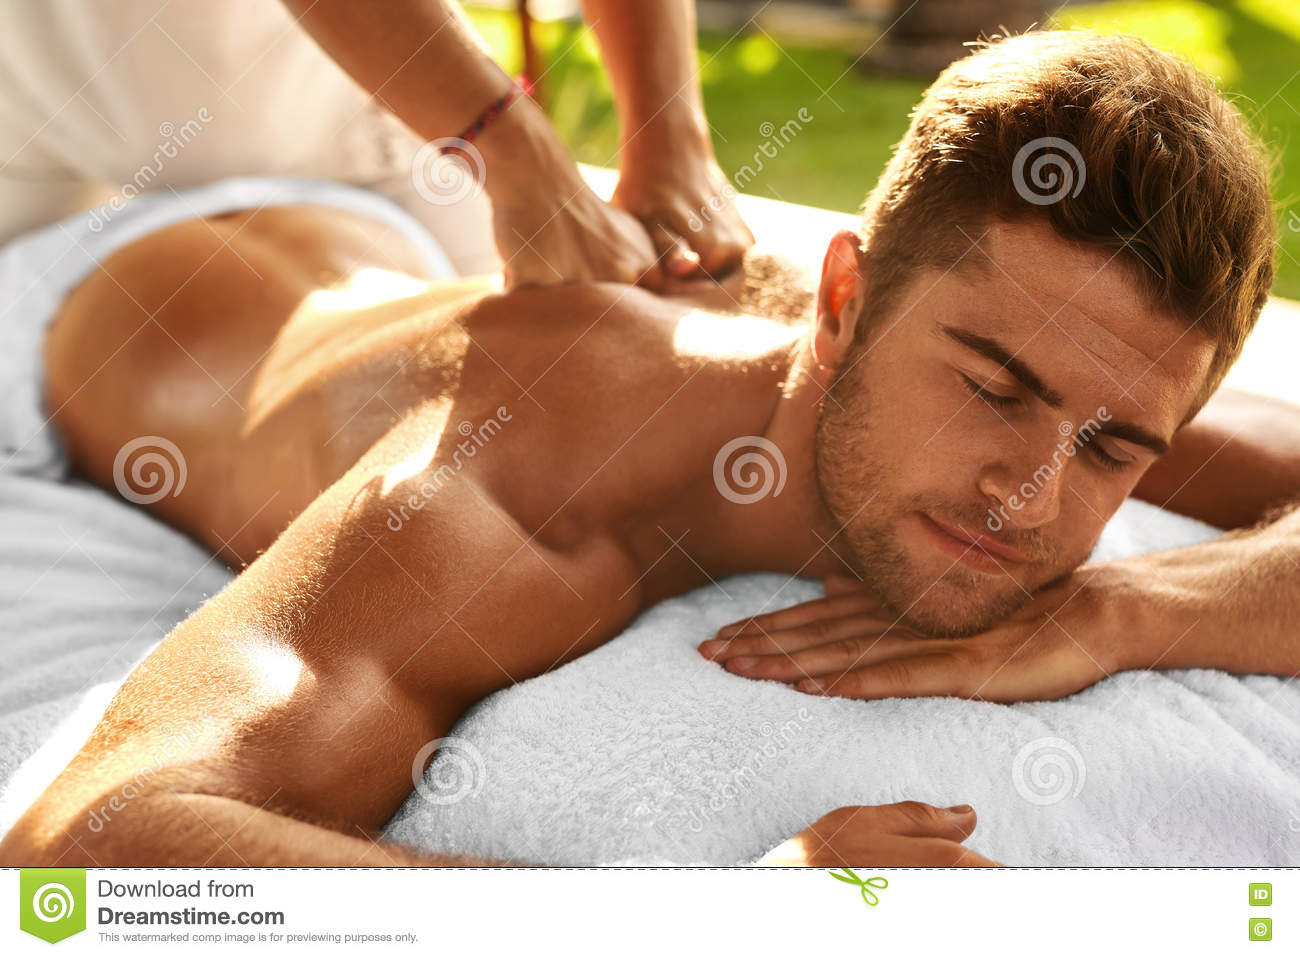 Where Can I Get Full Body Massage Spa Body Massage Man Enjoying Relaxing Back Massage Outdoors